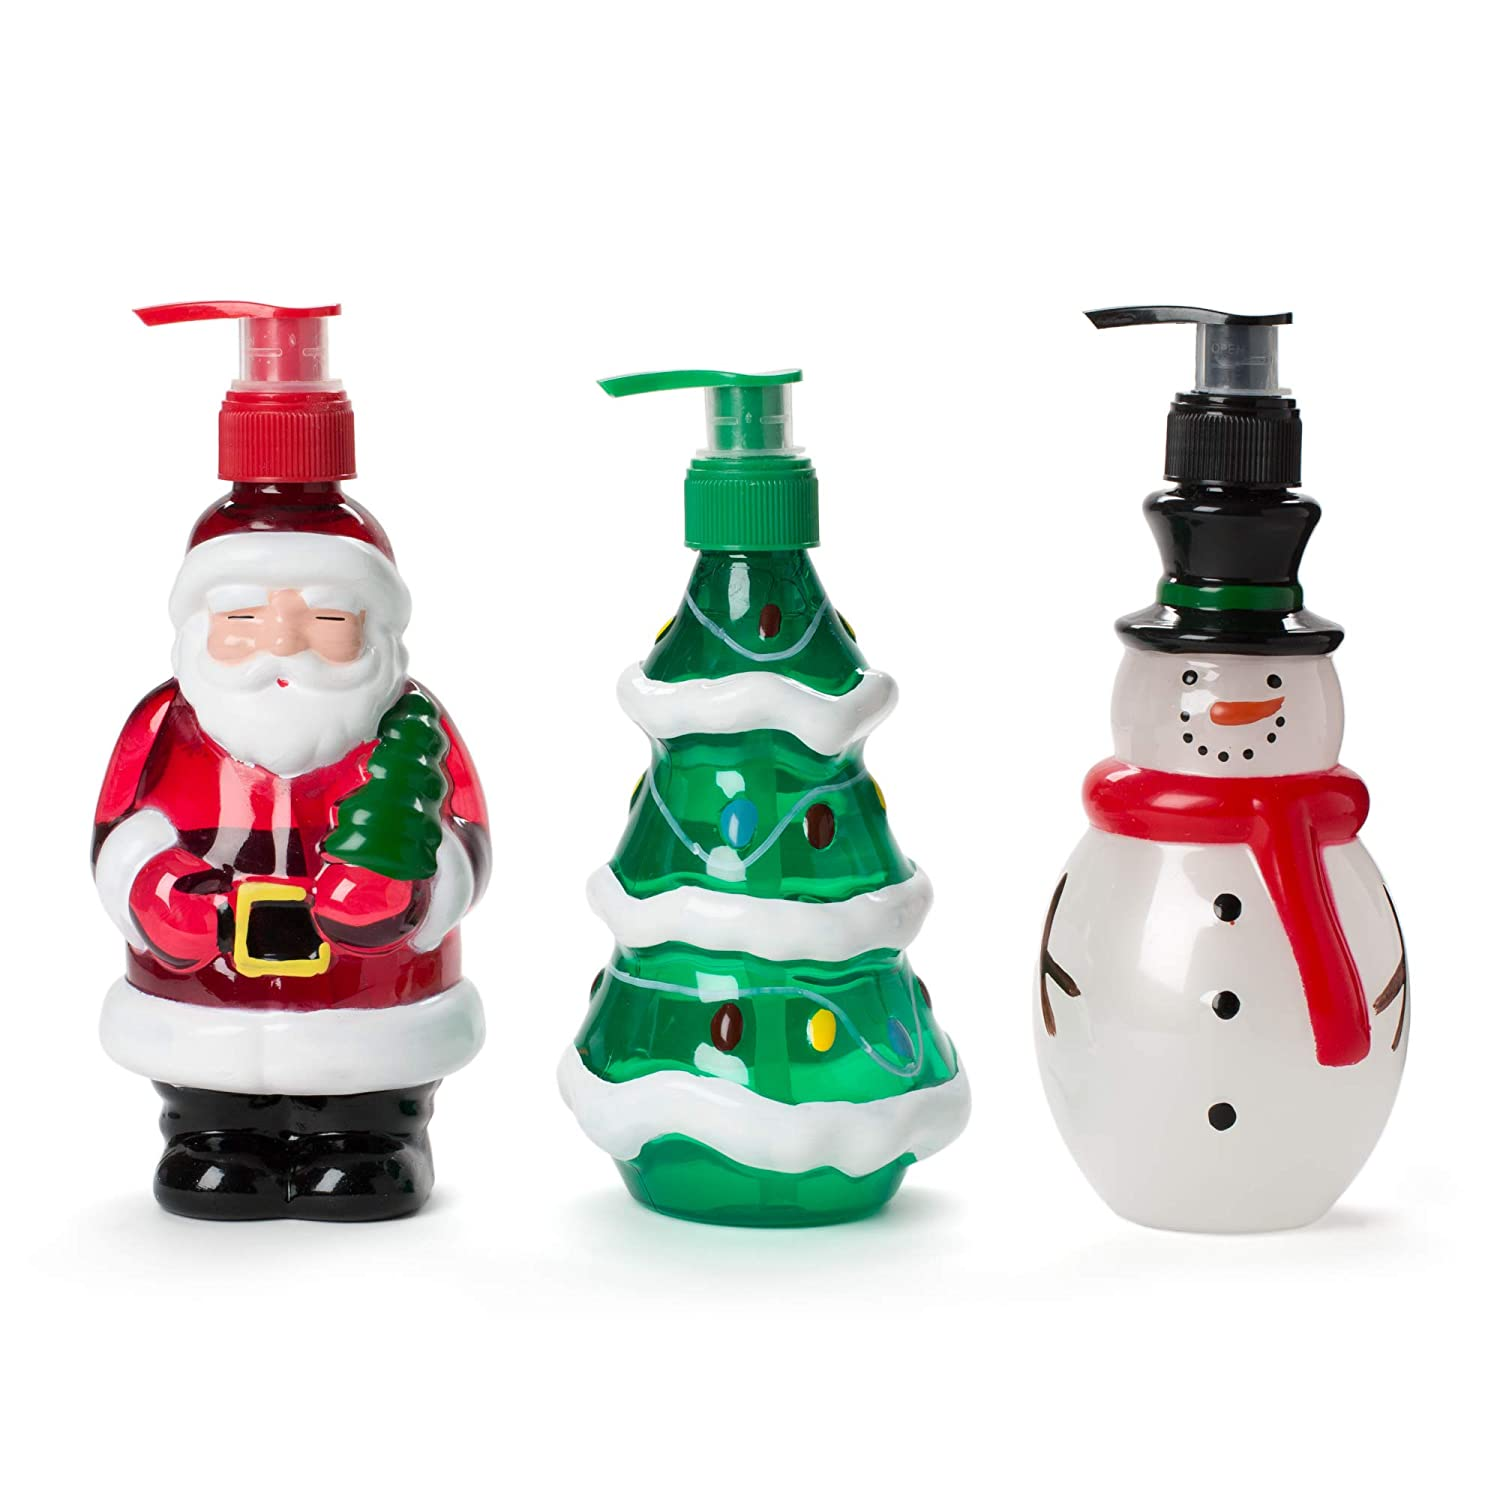 Liquid Hand Soap Holiday Bottles: Tri-Coastal Design Simple Pleasures Scented Hand Soaps - Sugar Coated Apple, Frosty Delight and Snow Flurries Scents - Novelty Shape Pump Bottle Dispensers, 3 Pack